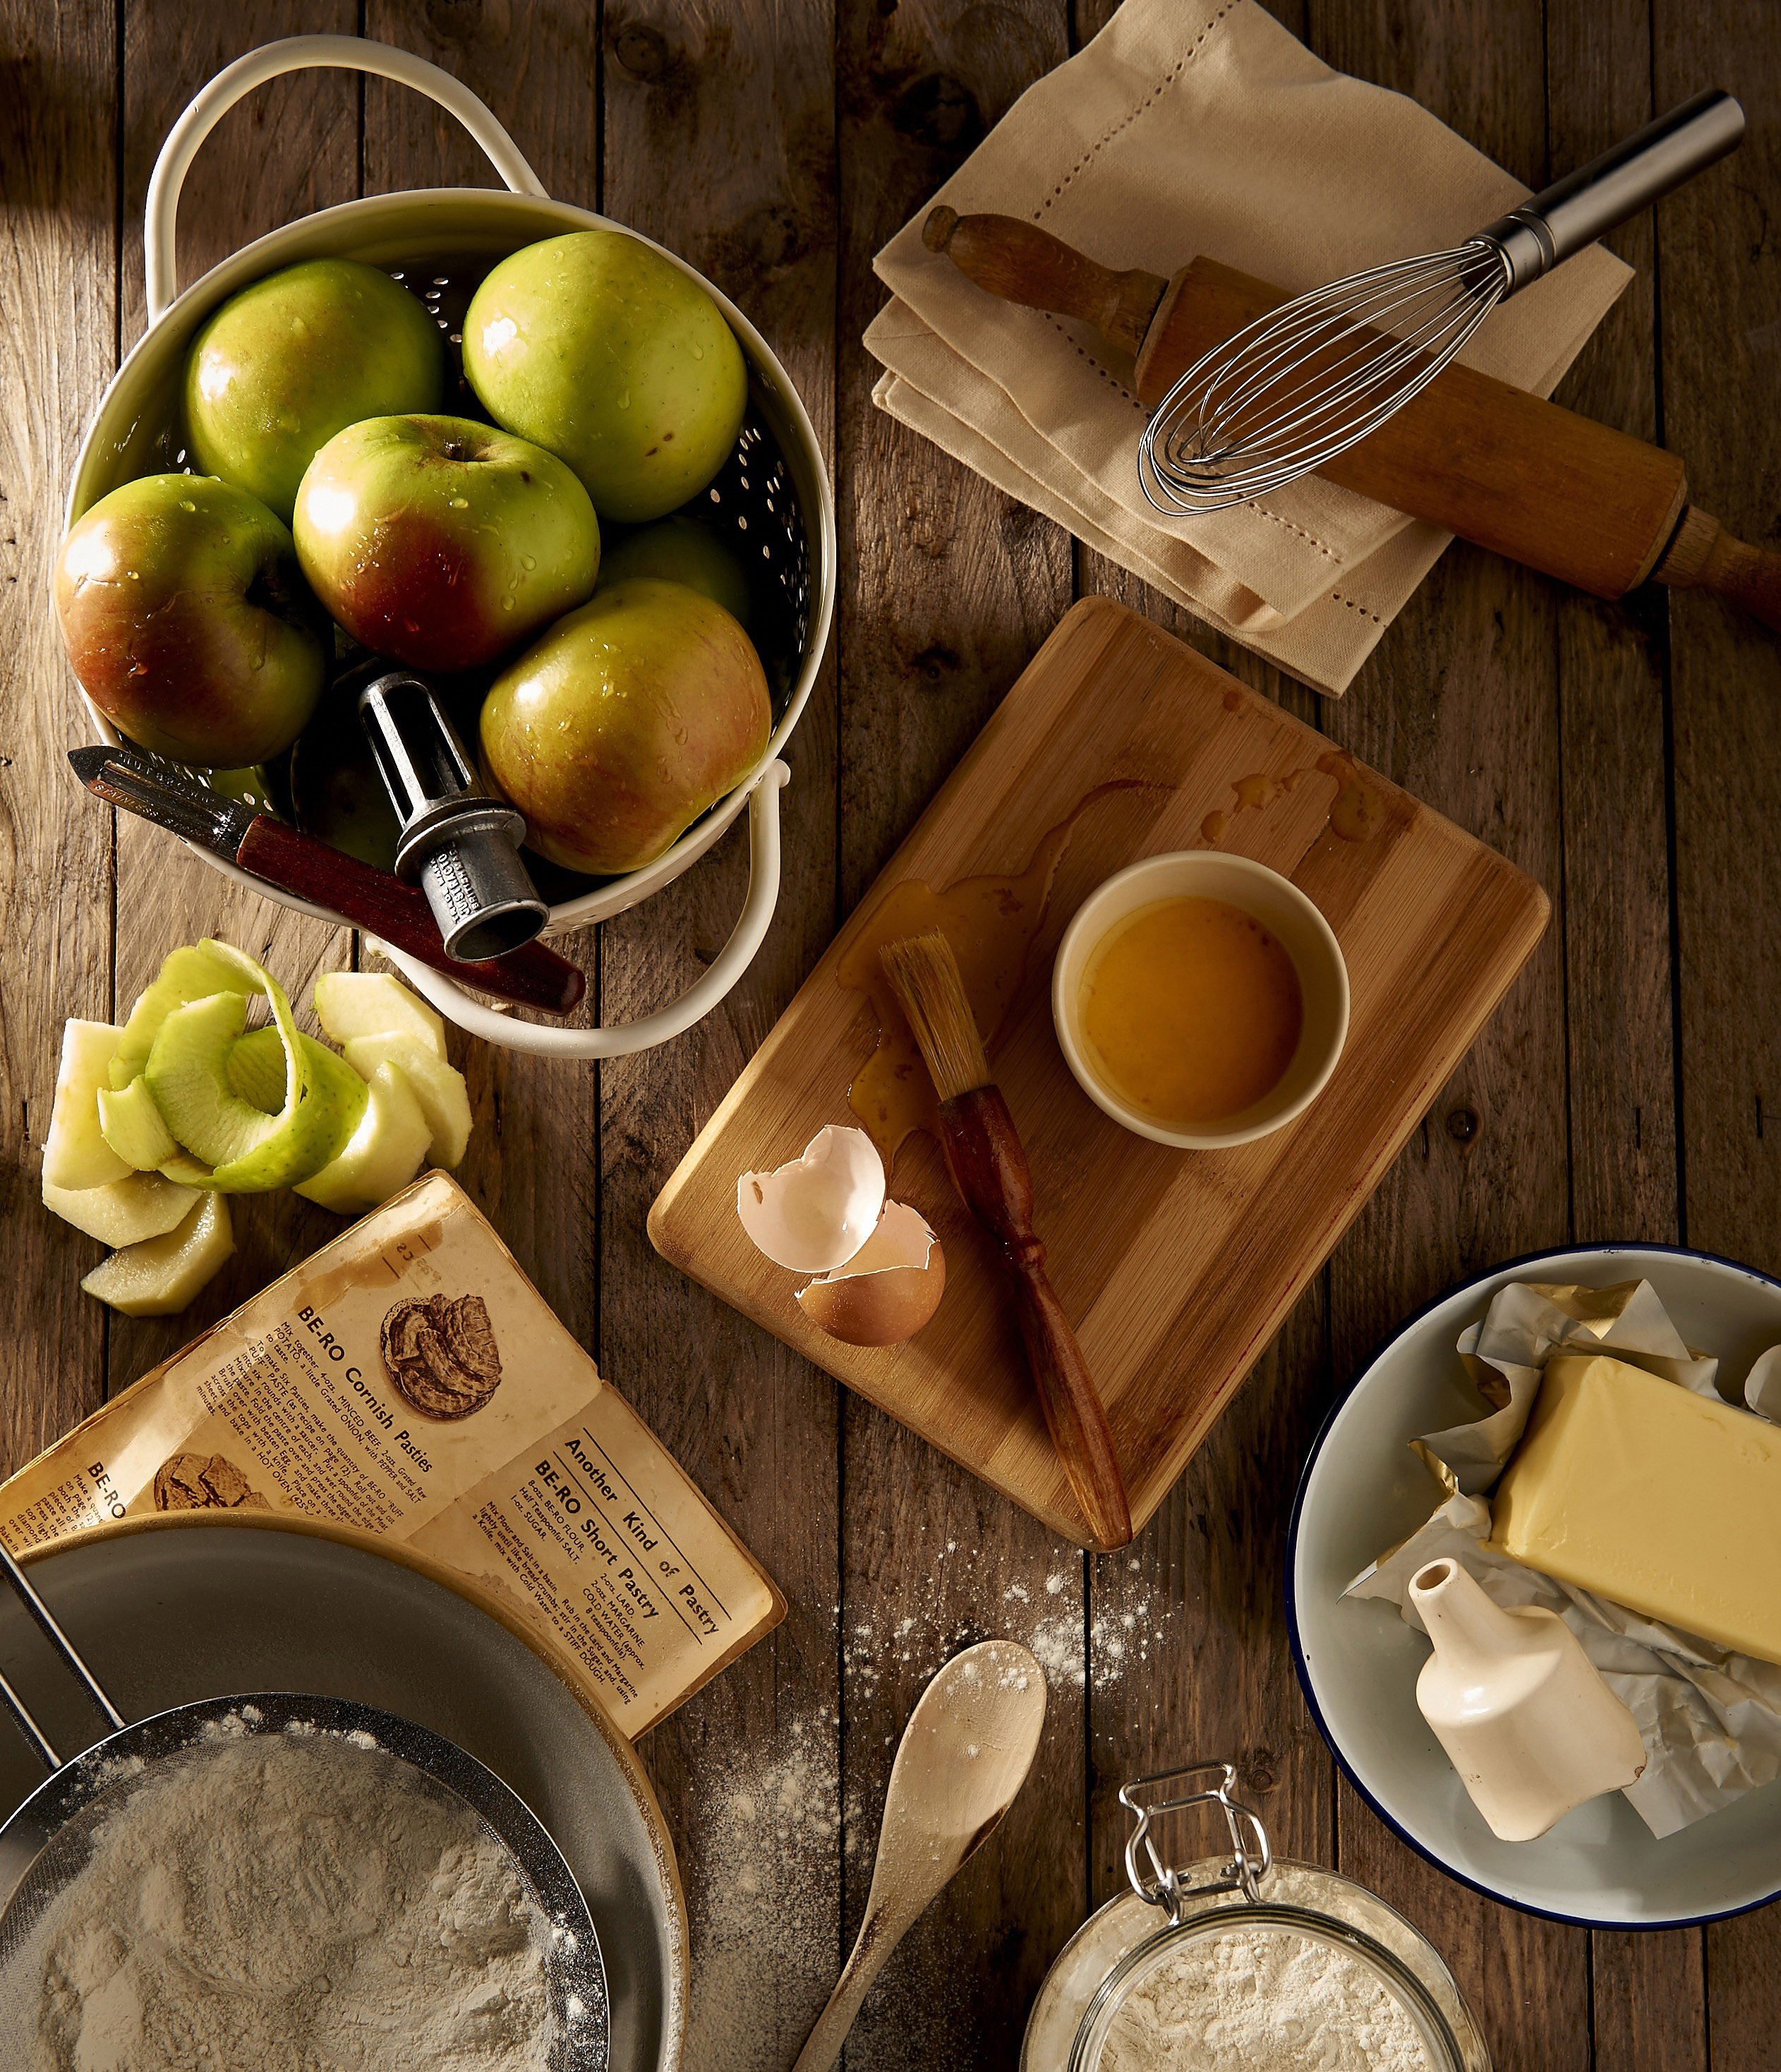 Fall Weather Wallpaper Best Apples For Baking And Cooking Apple Pie Applesauce